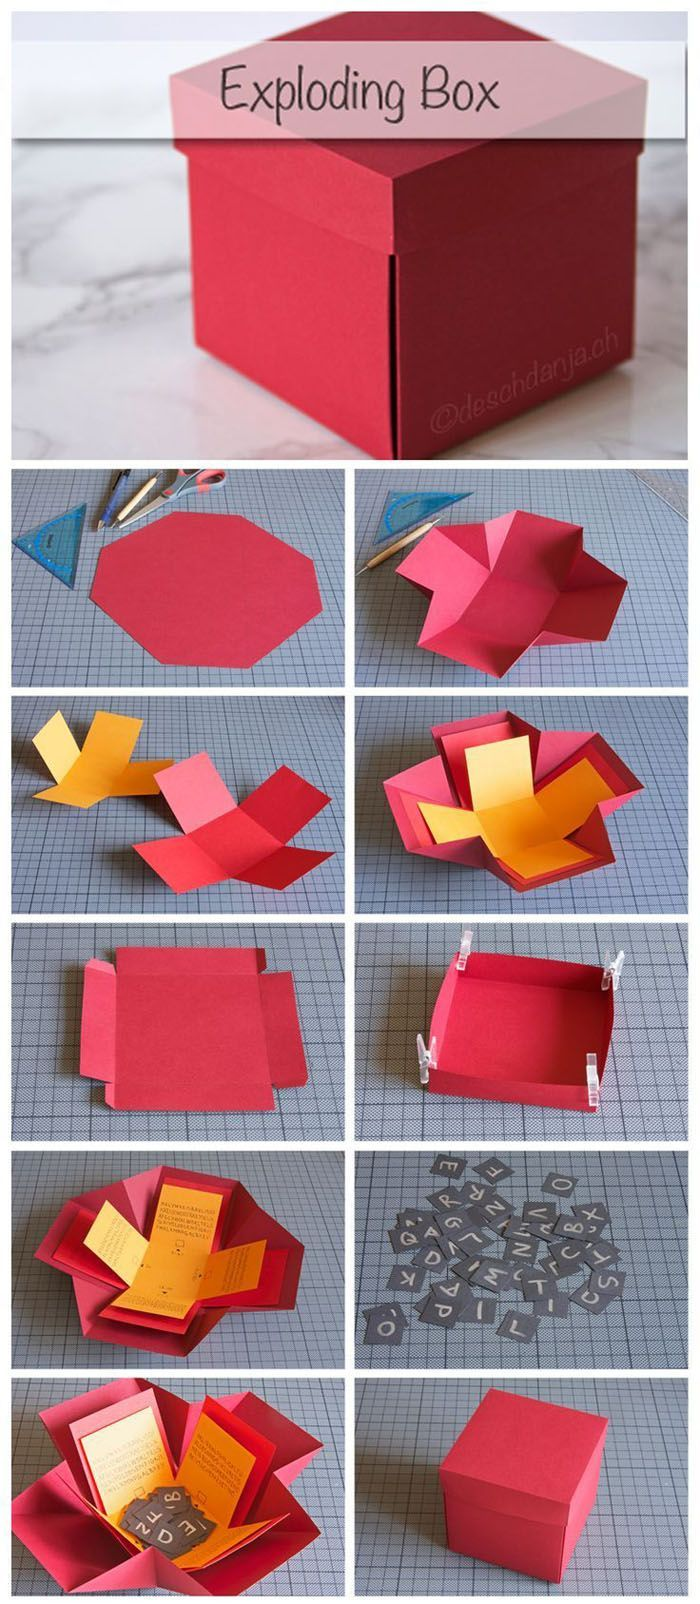 Crafting a gift box - Instructions for stimulating creativity#box #crafting #creativity #gift #instructions #stimulating